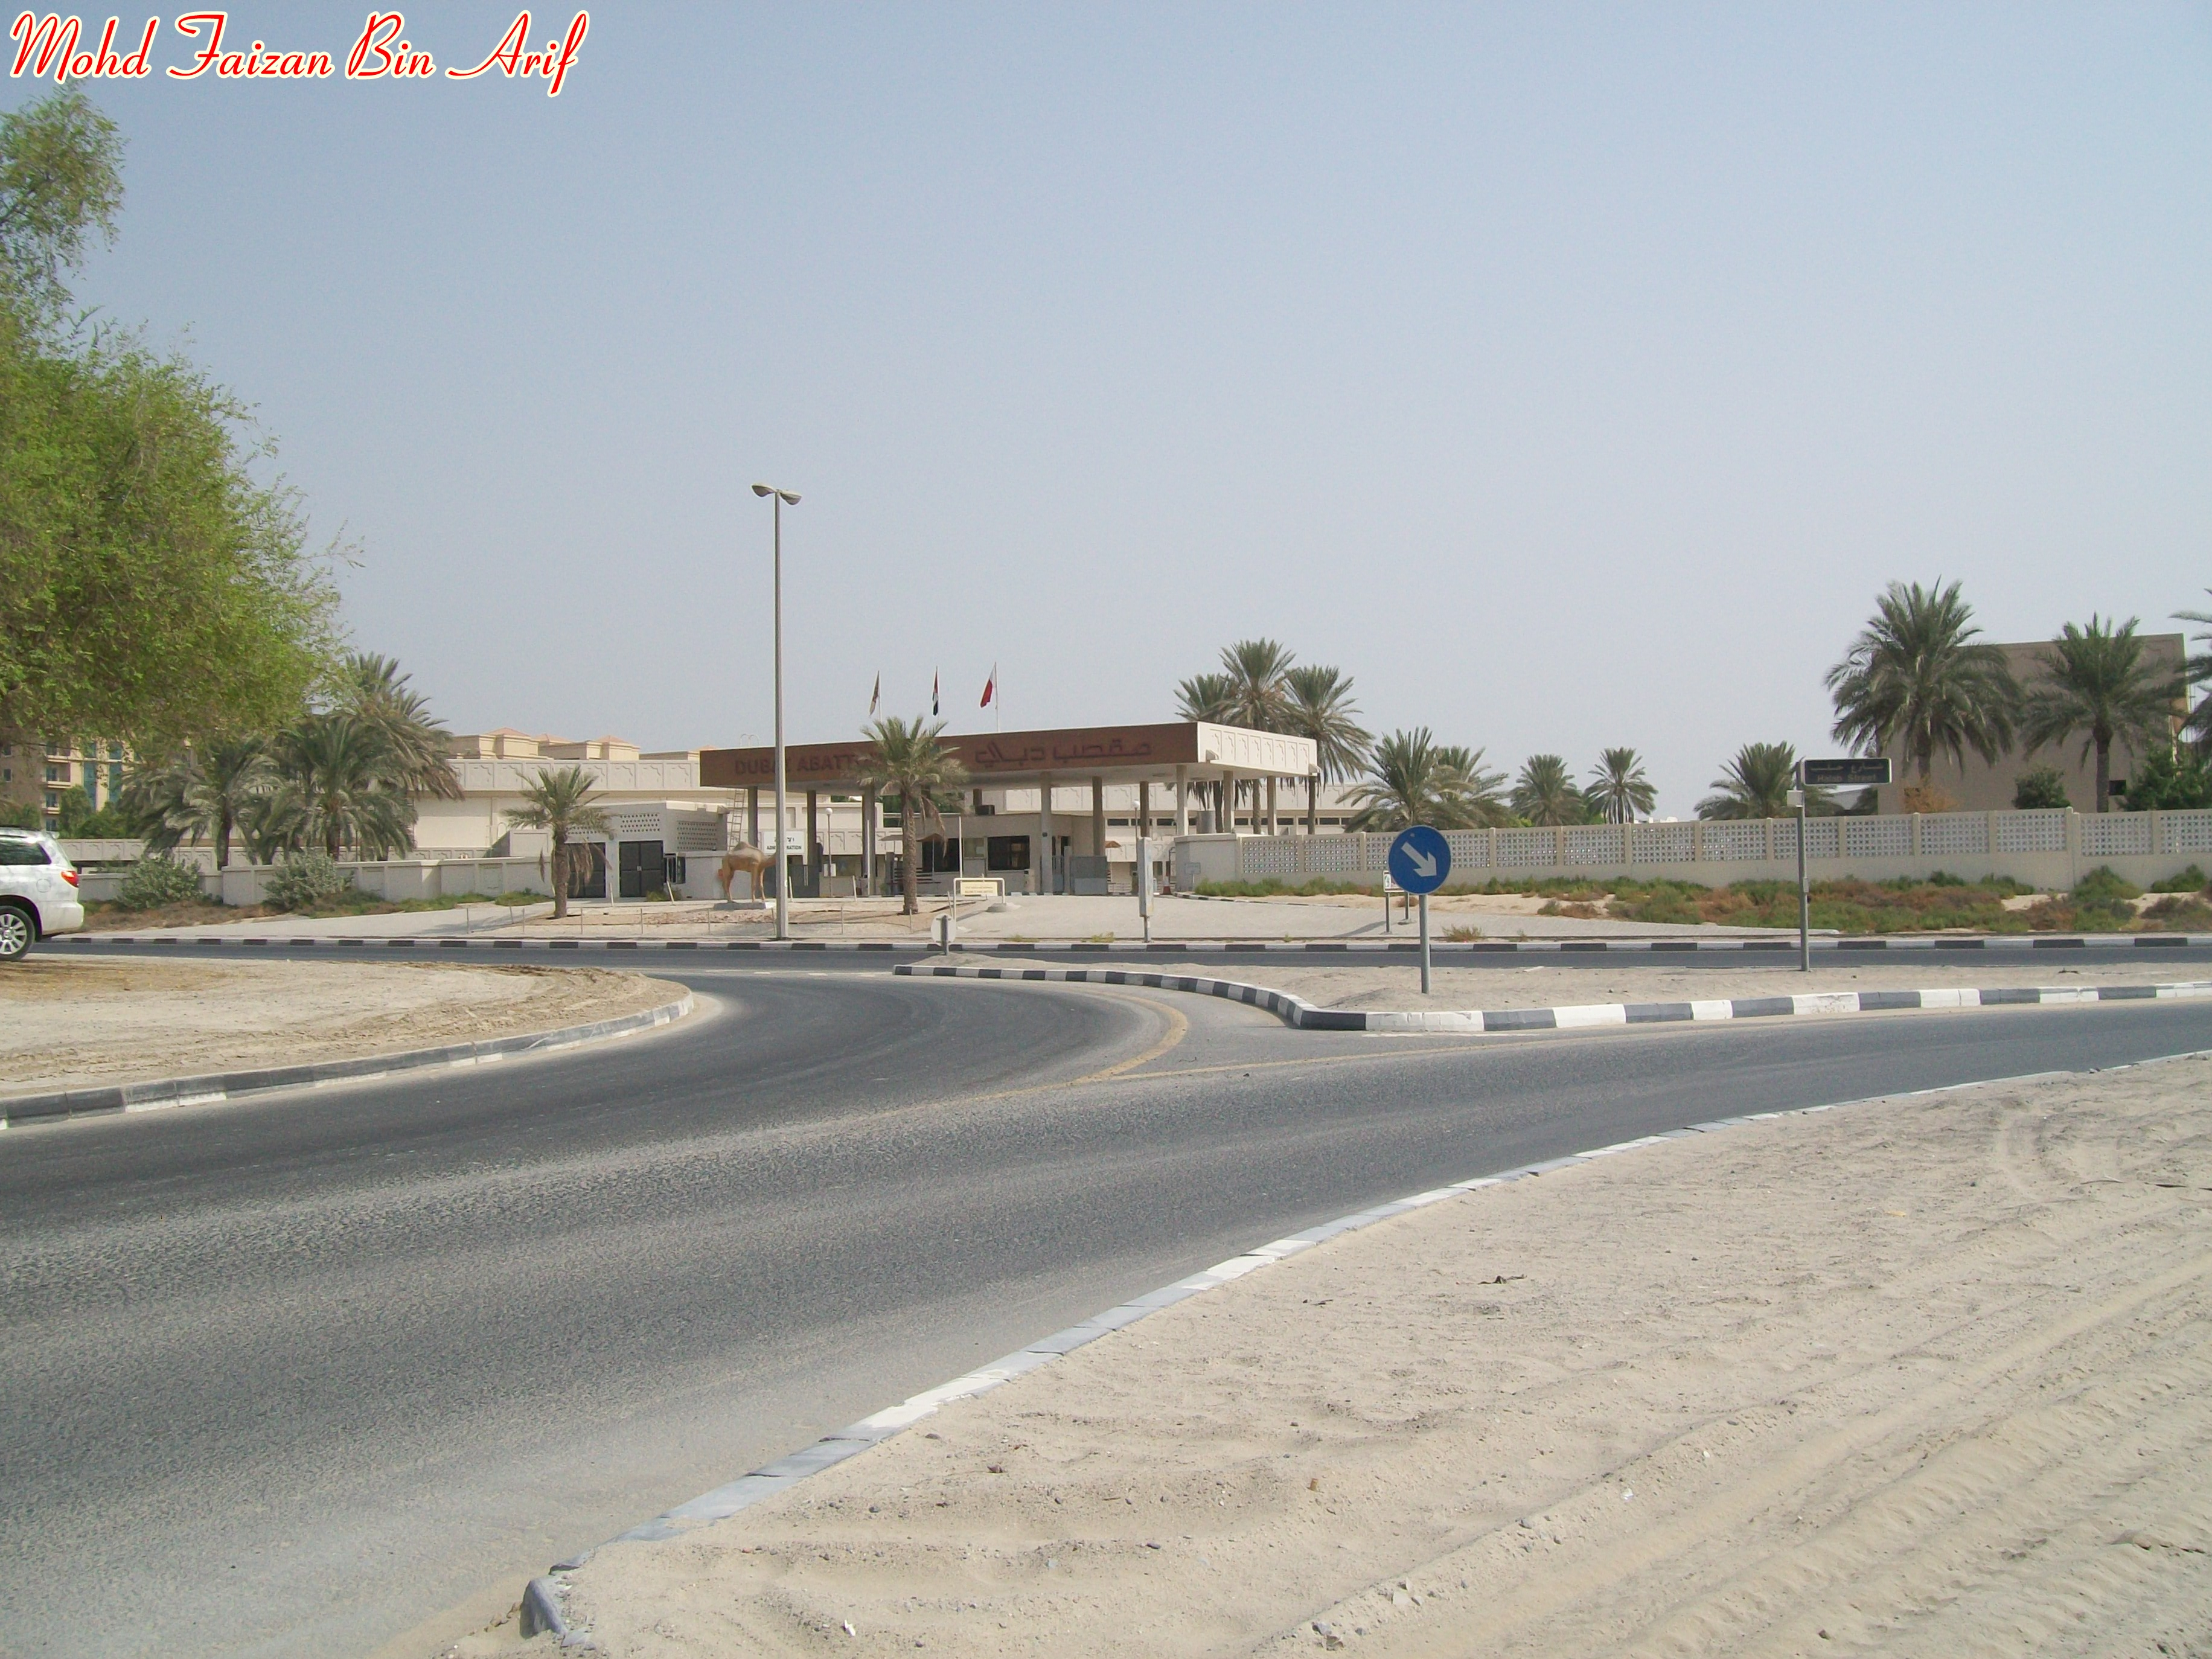 File:Al Qusais Industrial Area 2 - Dubai - United Arab Emirates